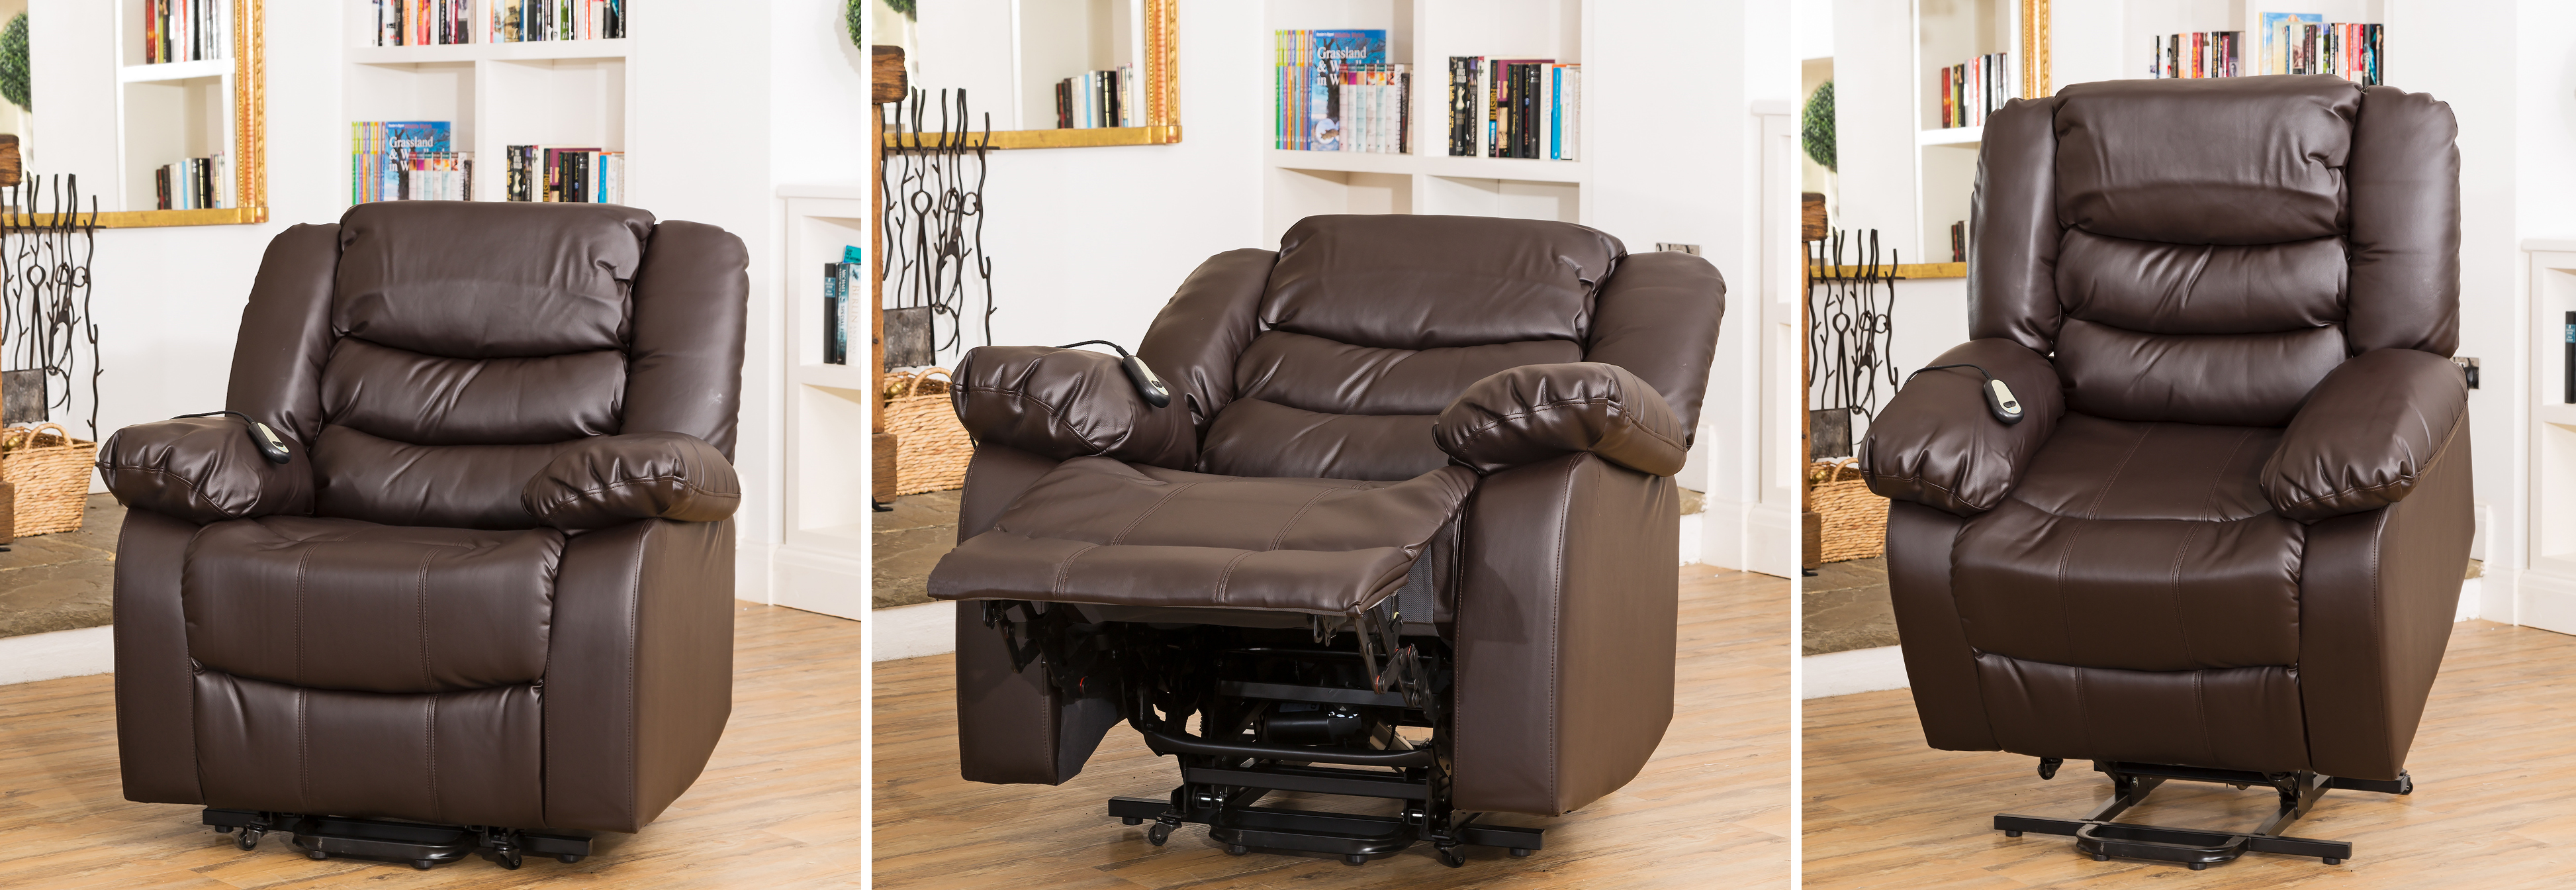 Seville Electric Riser Reclining Chair brown